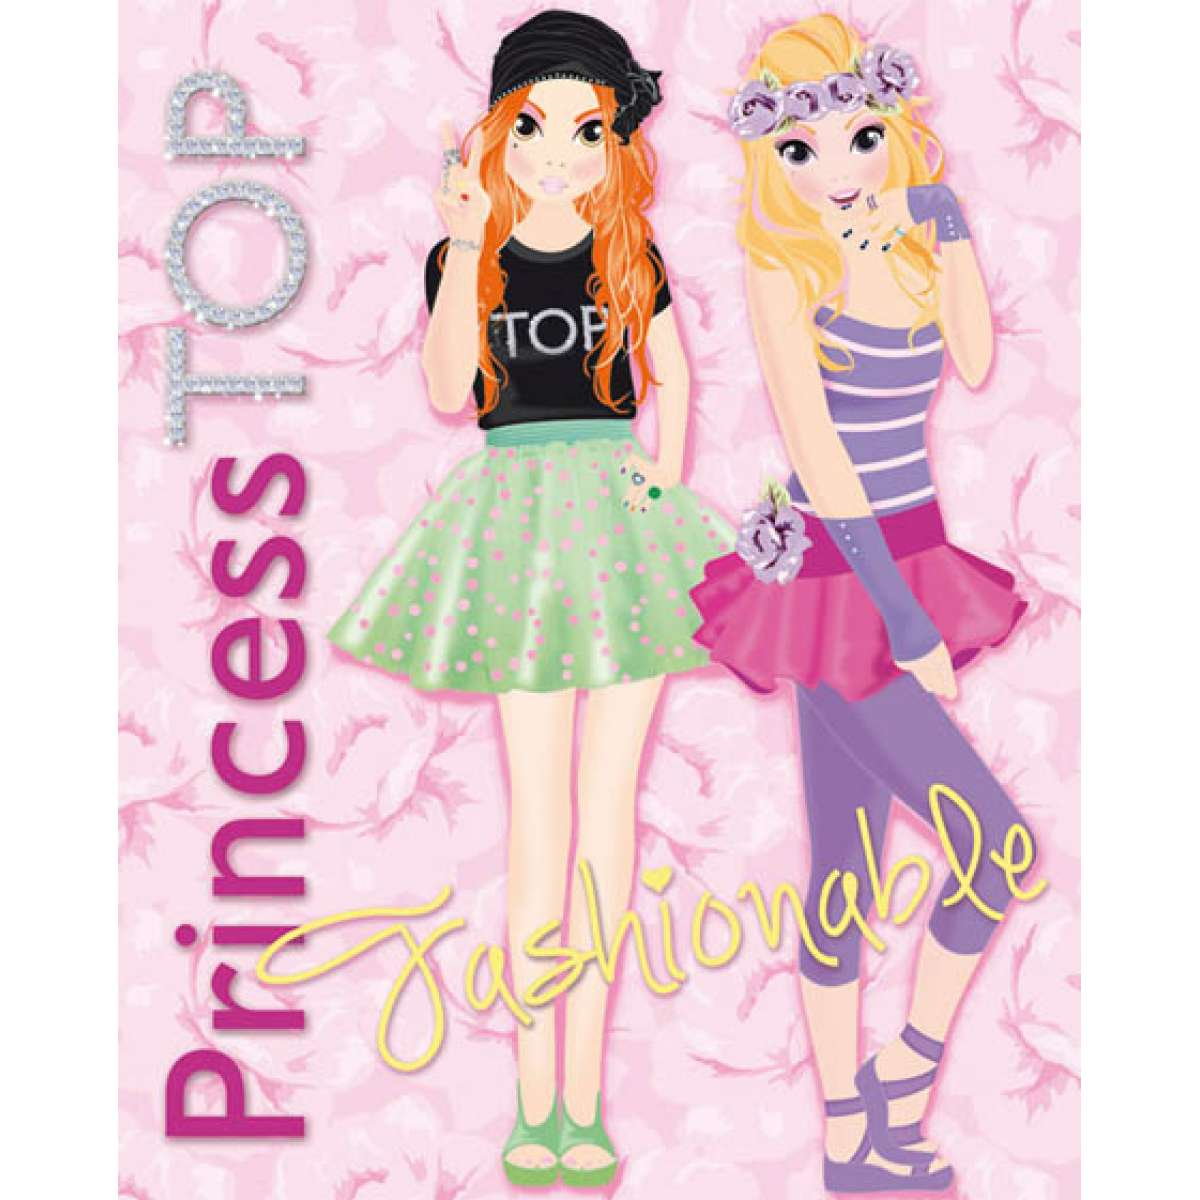 PRINCESSTOP: FASHIONABLE